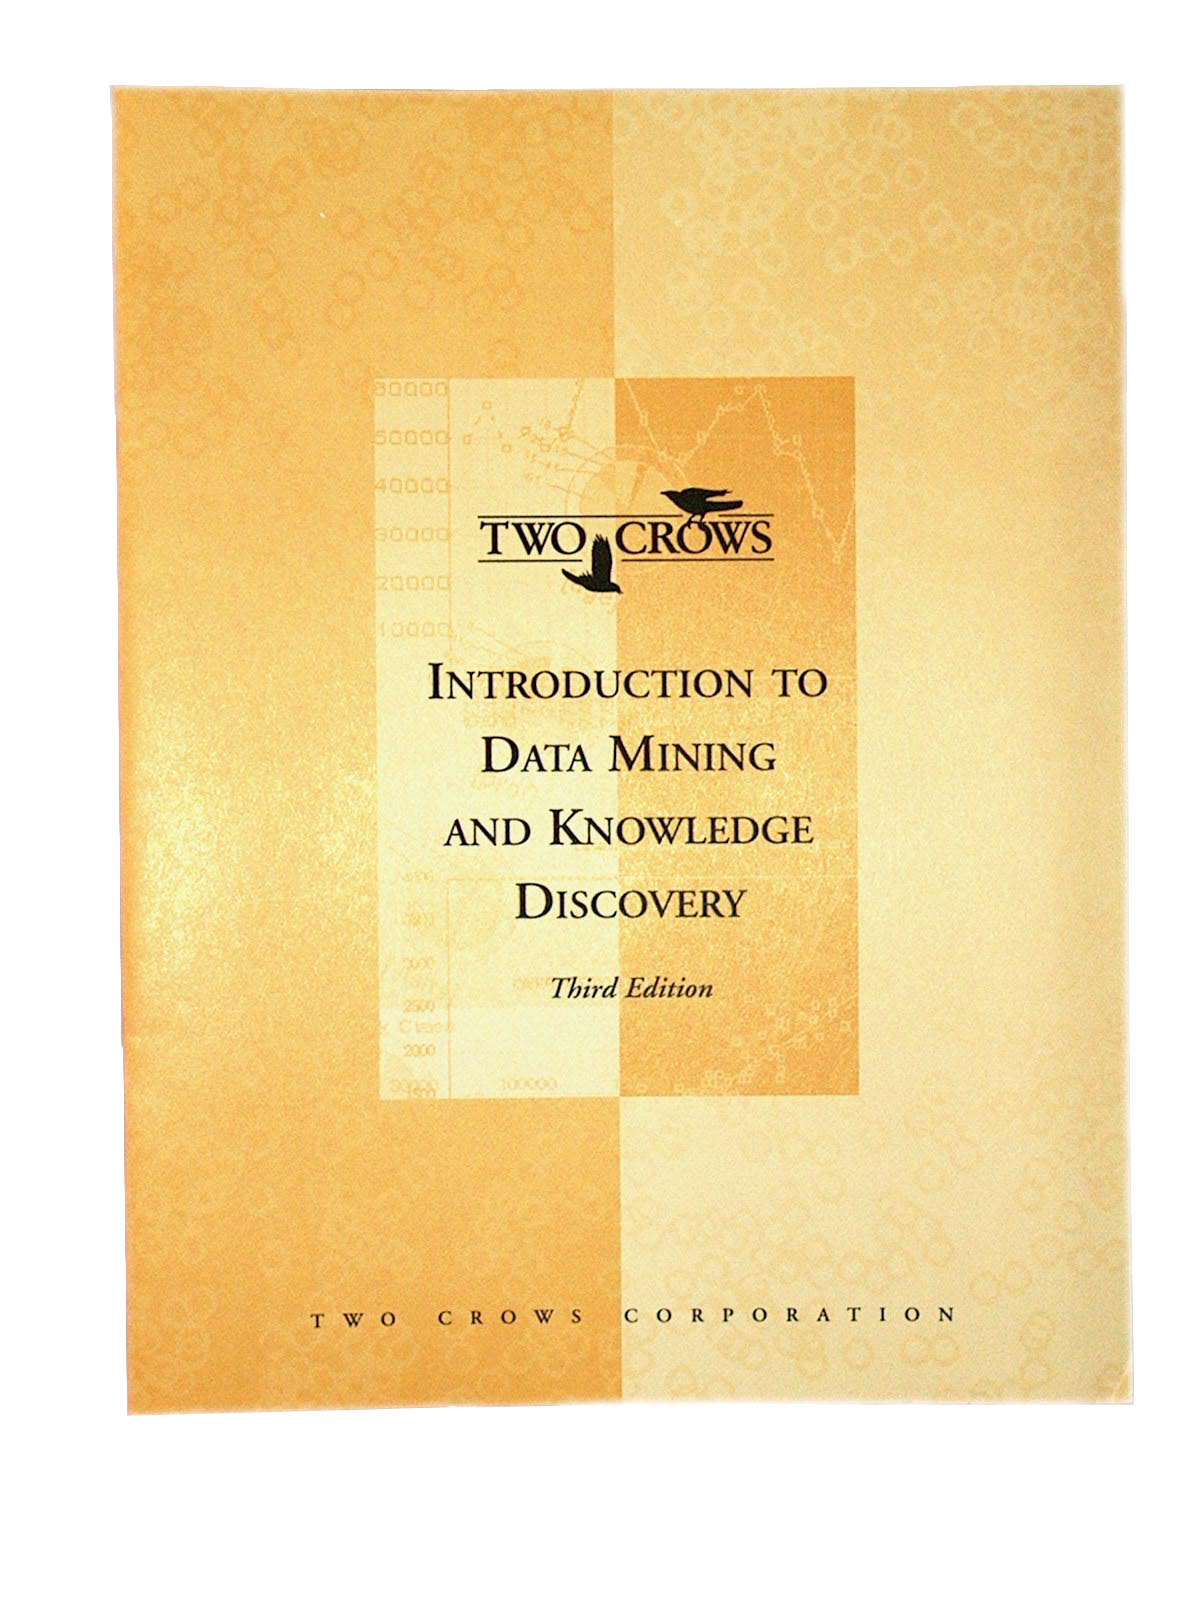 Data mining booklet